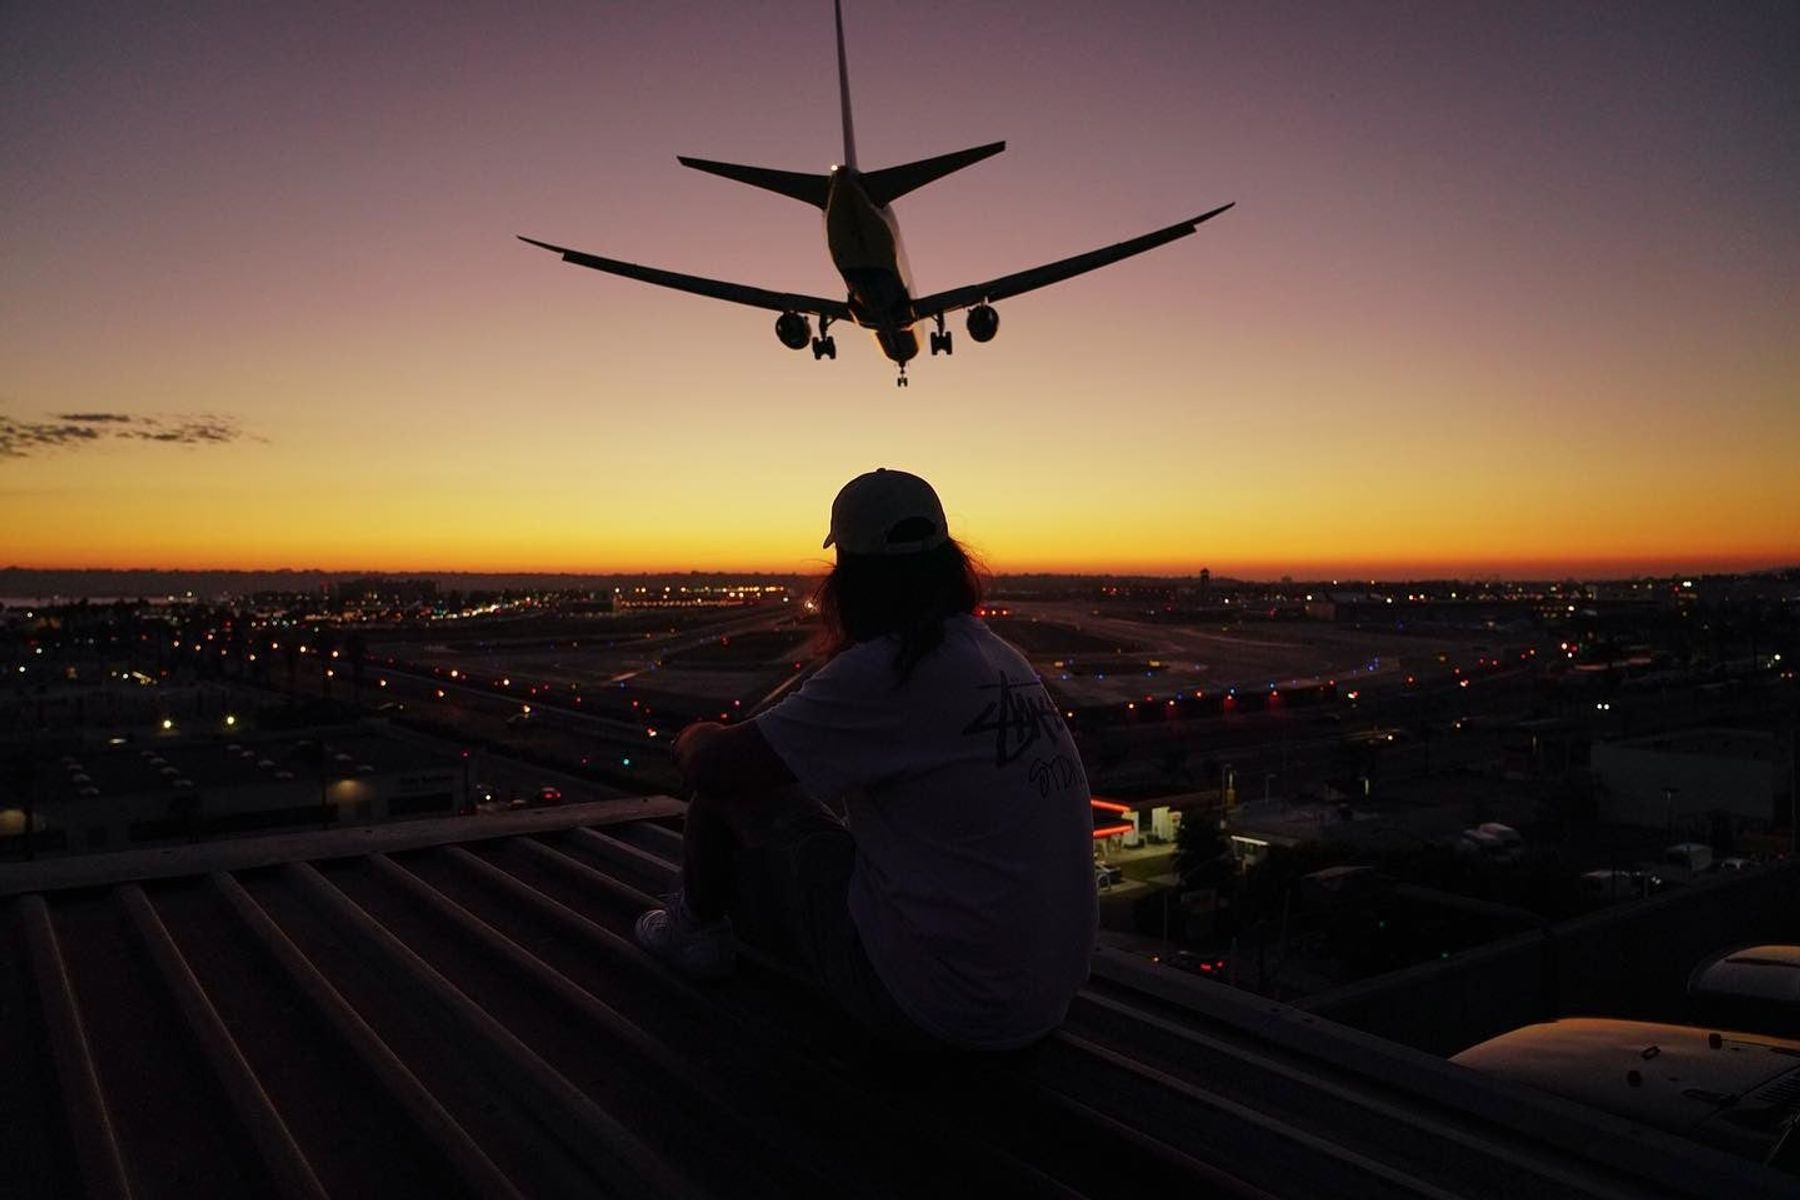 A person sits on a roof by an airport and watches a plane fly over, perhaps contemplating the future of travel.